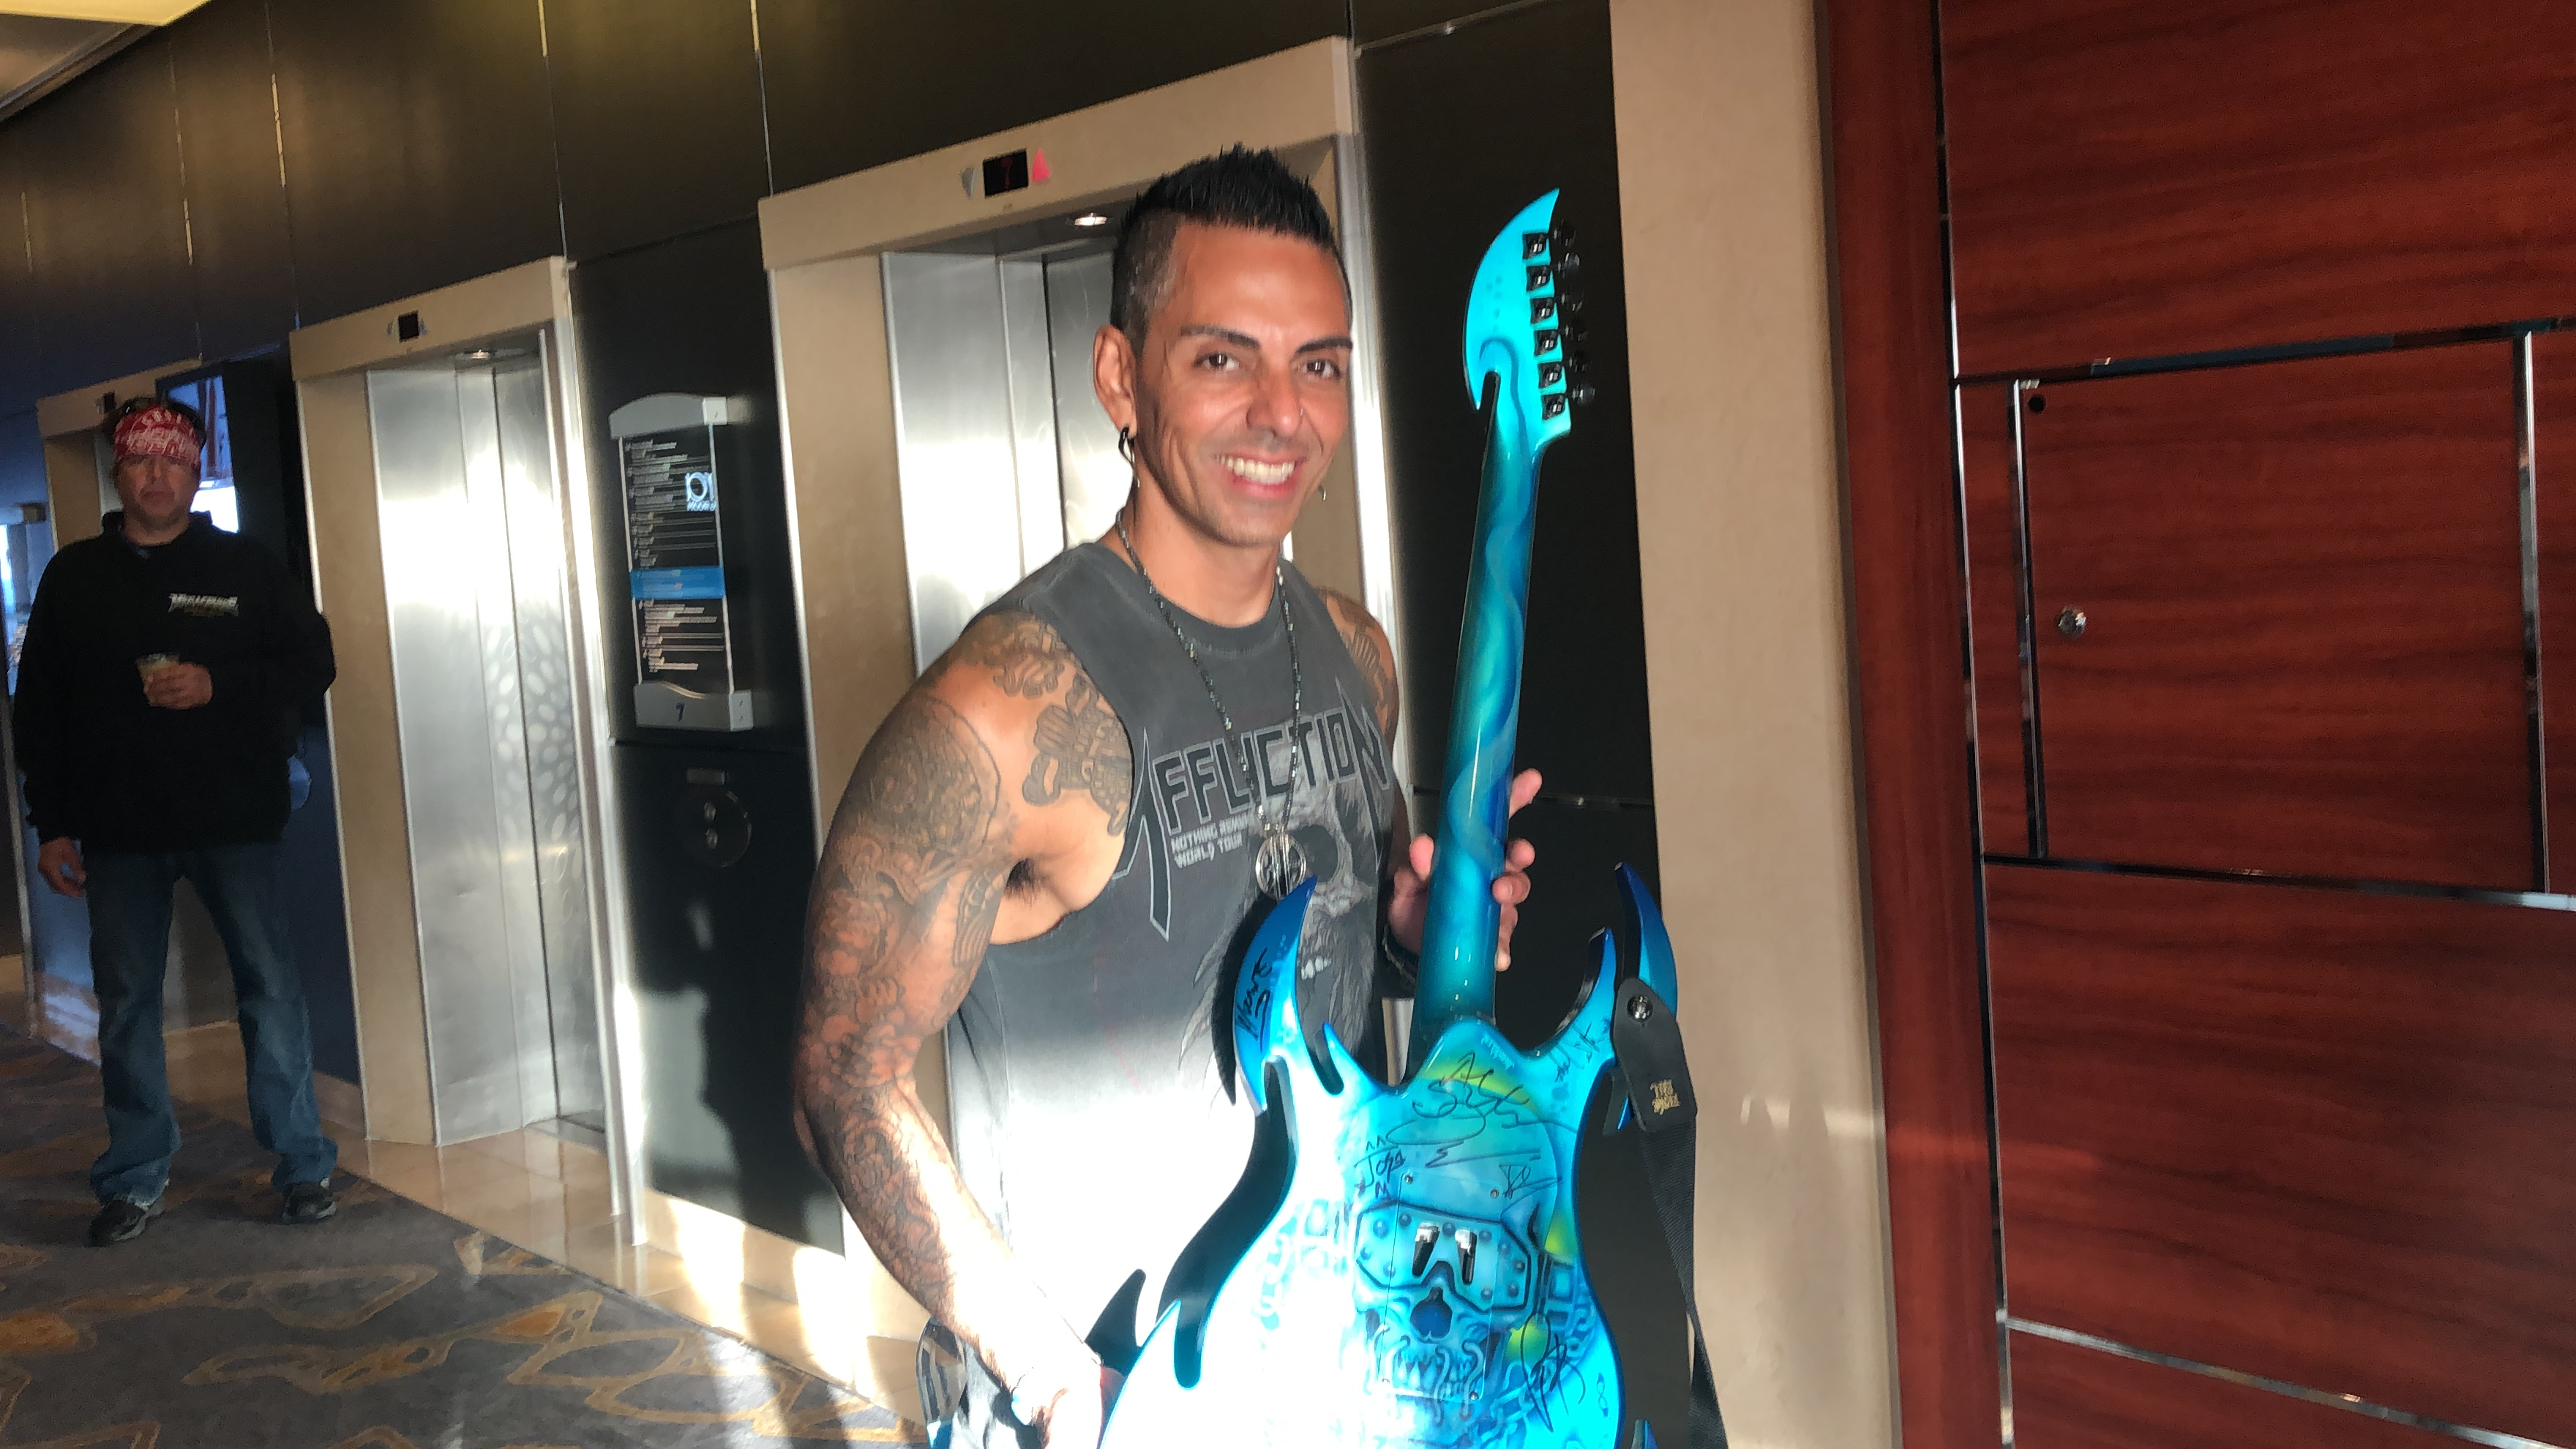 Mega Cool Guitar!